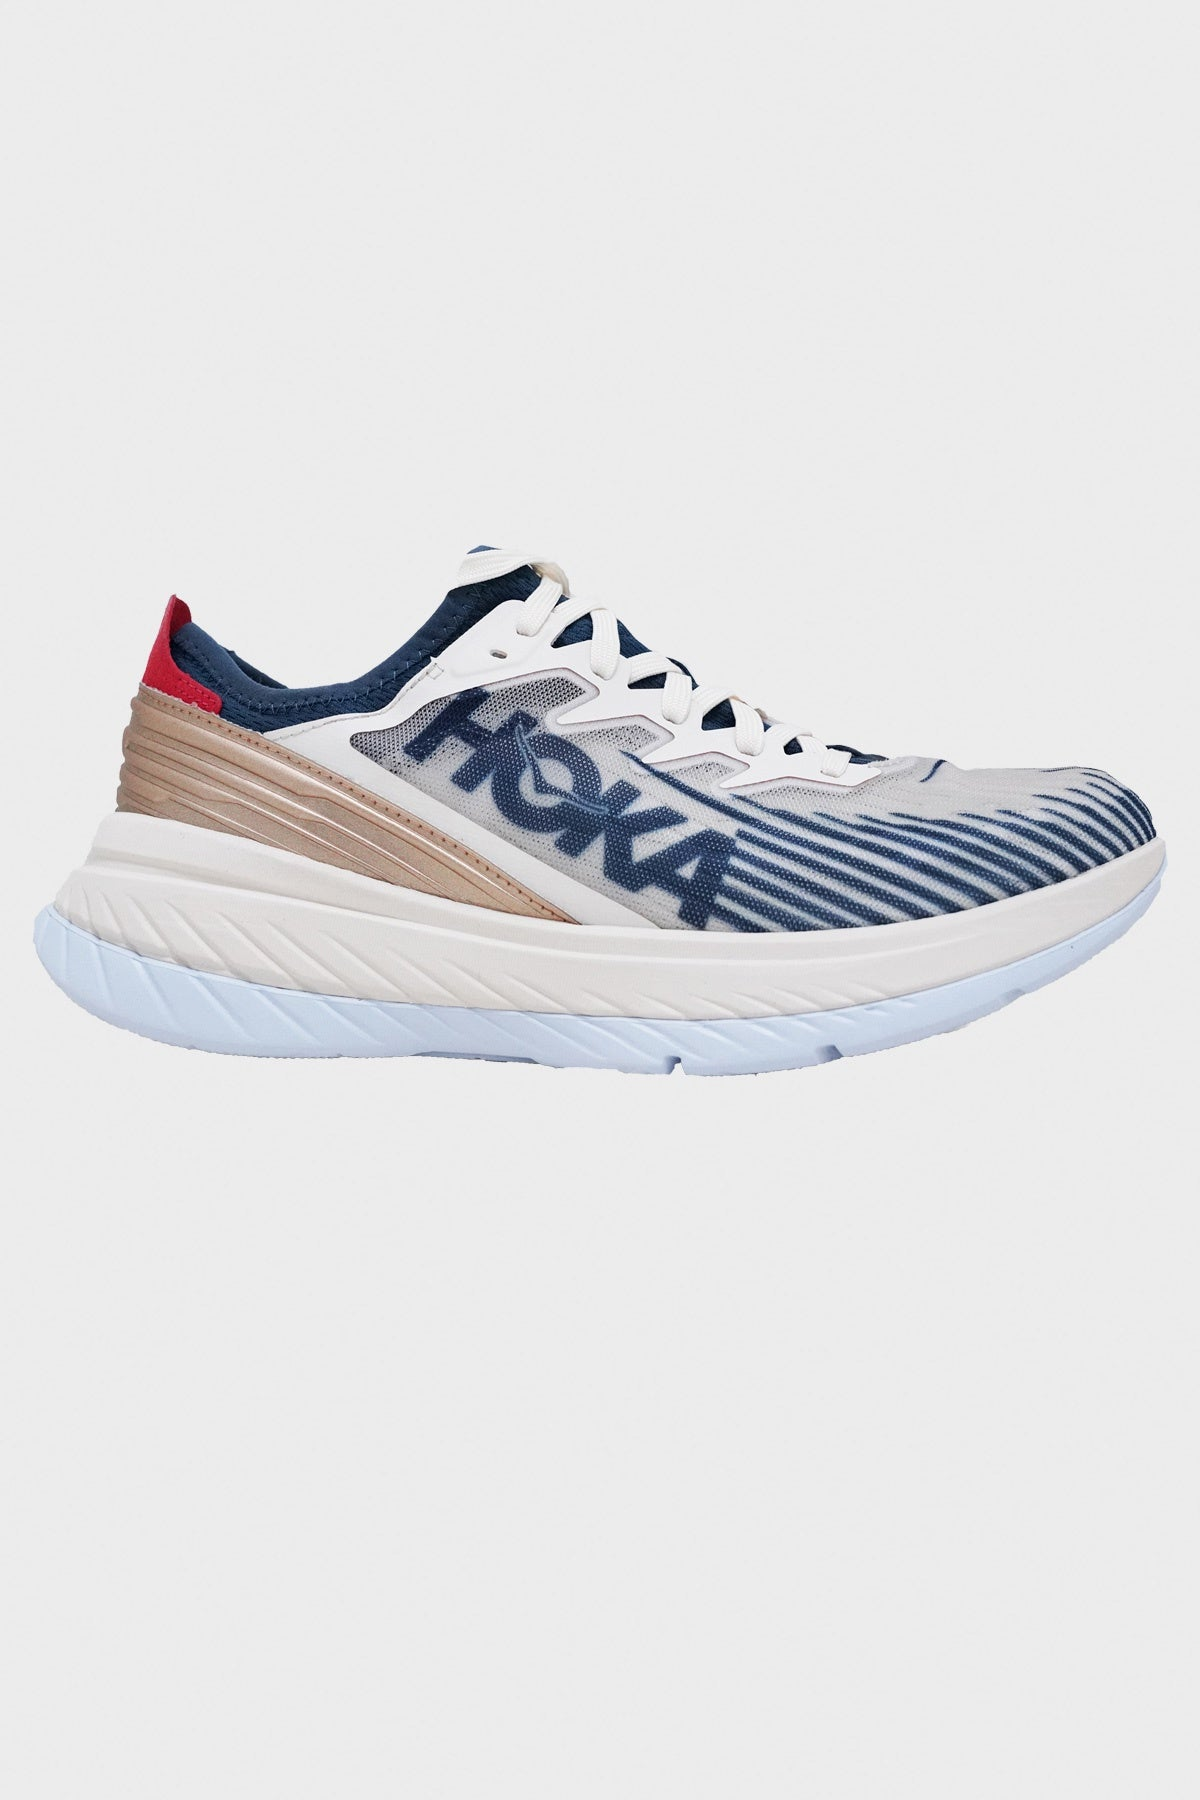 HOKA ONE ONE - Carbon X-SPE - Tofu/White - Canoe Club